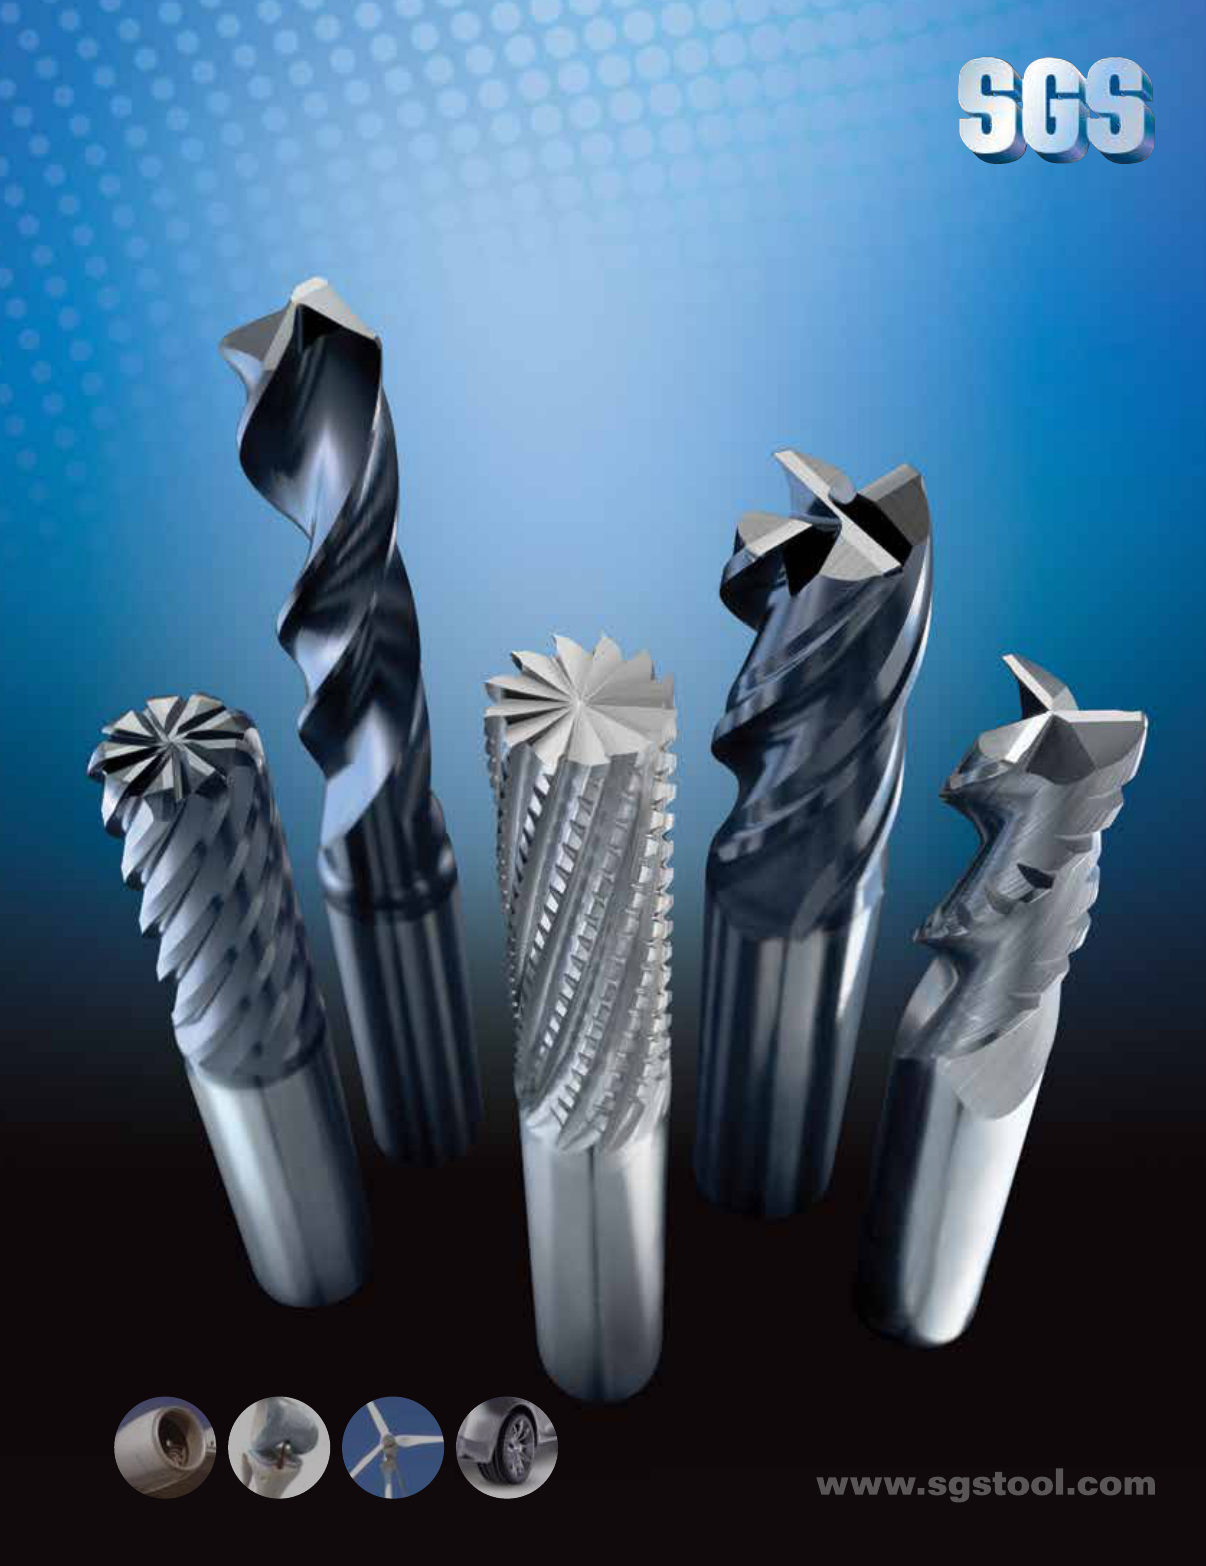 5//8 Shank Diameter 5//8 Cutting Diameter Titanium Nitride Coating SGS 38276 3CR 2 Flute Corner Radius General Purpose End Mill 3-1//2 Length 1-1//4 Cutting Length 0.020 Corner Radius